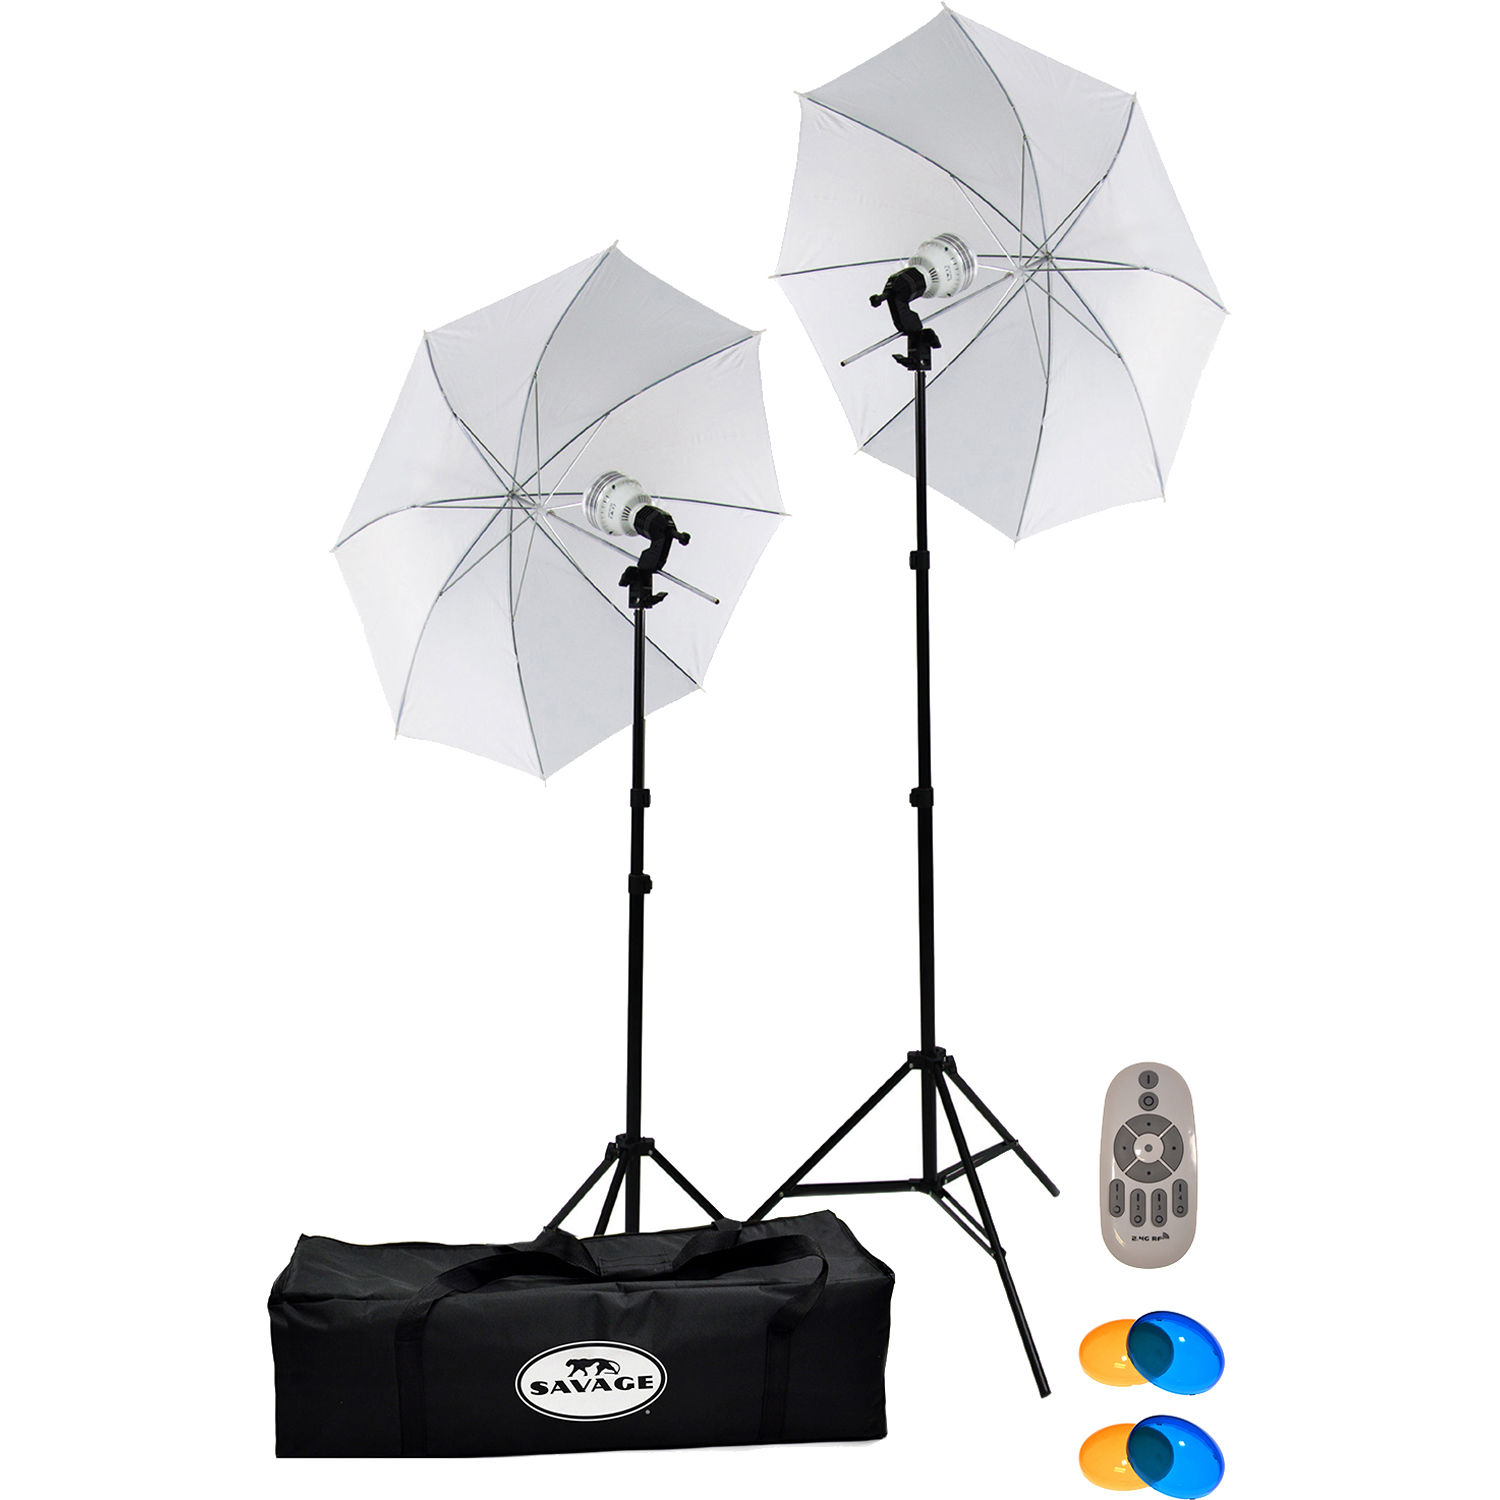 Led Studio Light Repair: Savage Savage 500W LED Studio Light Kit LED60K-R B&H Photo